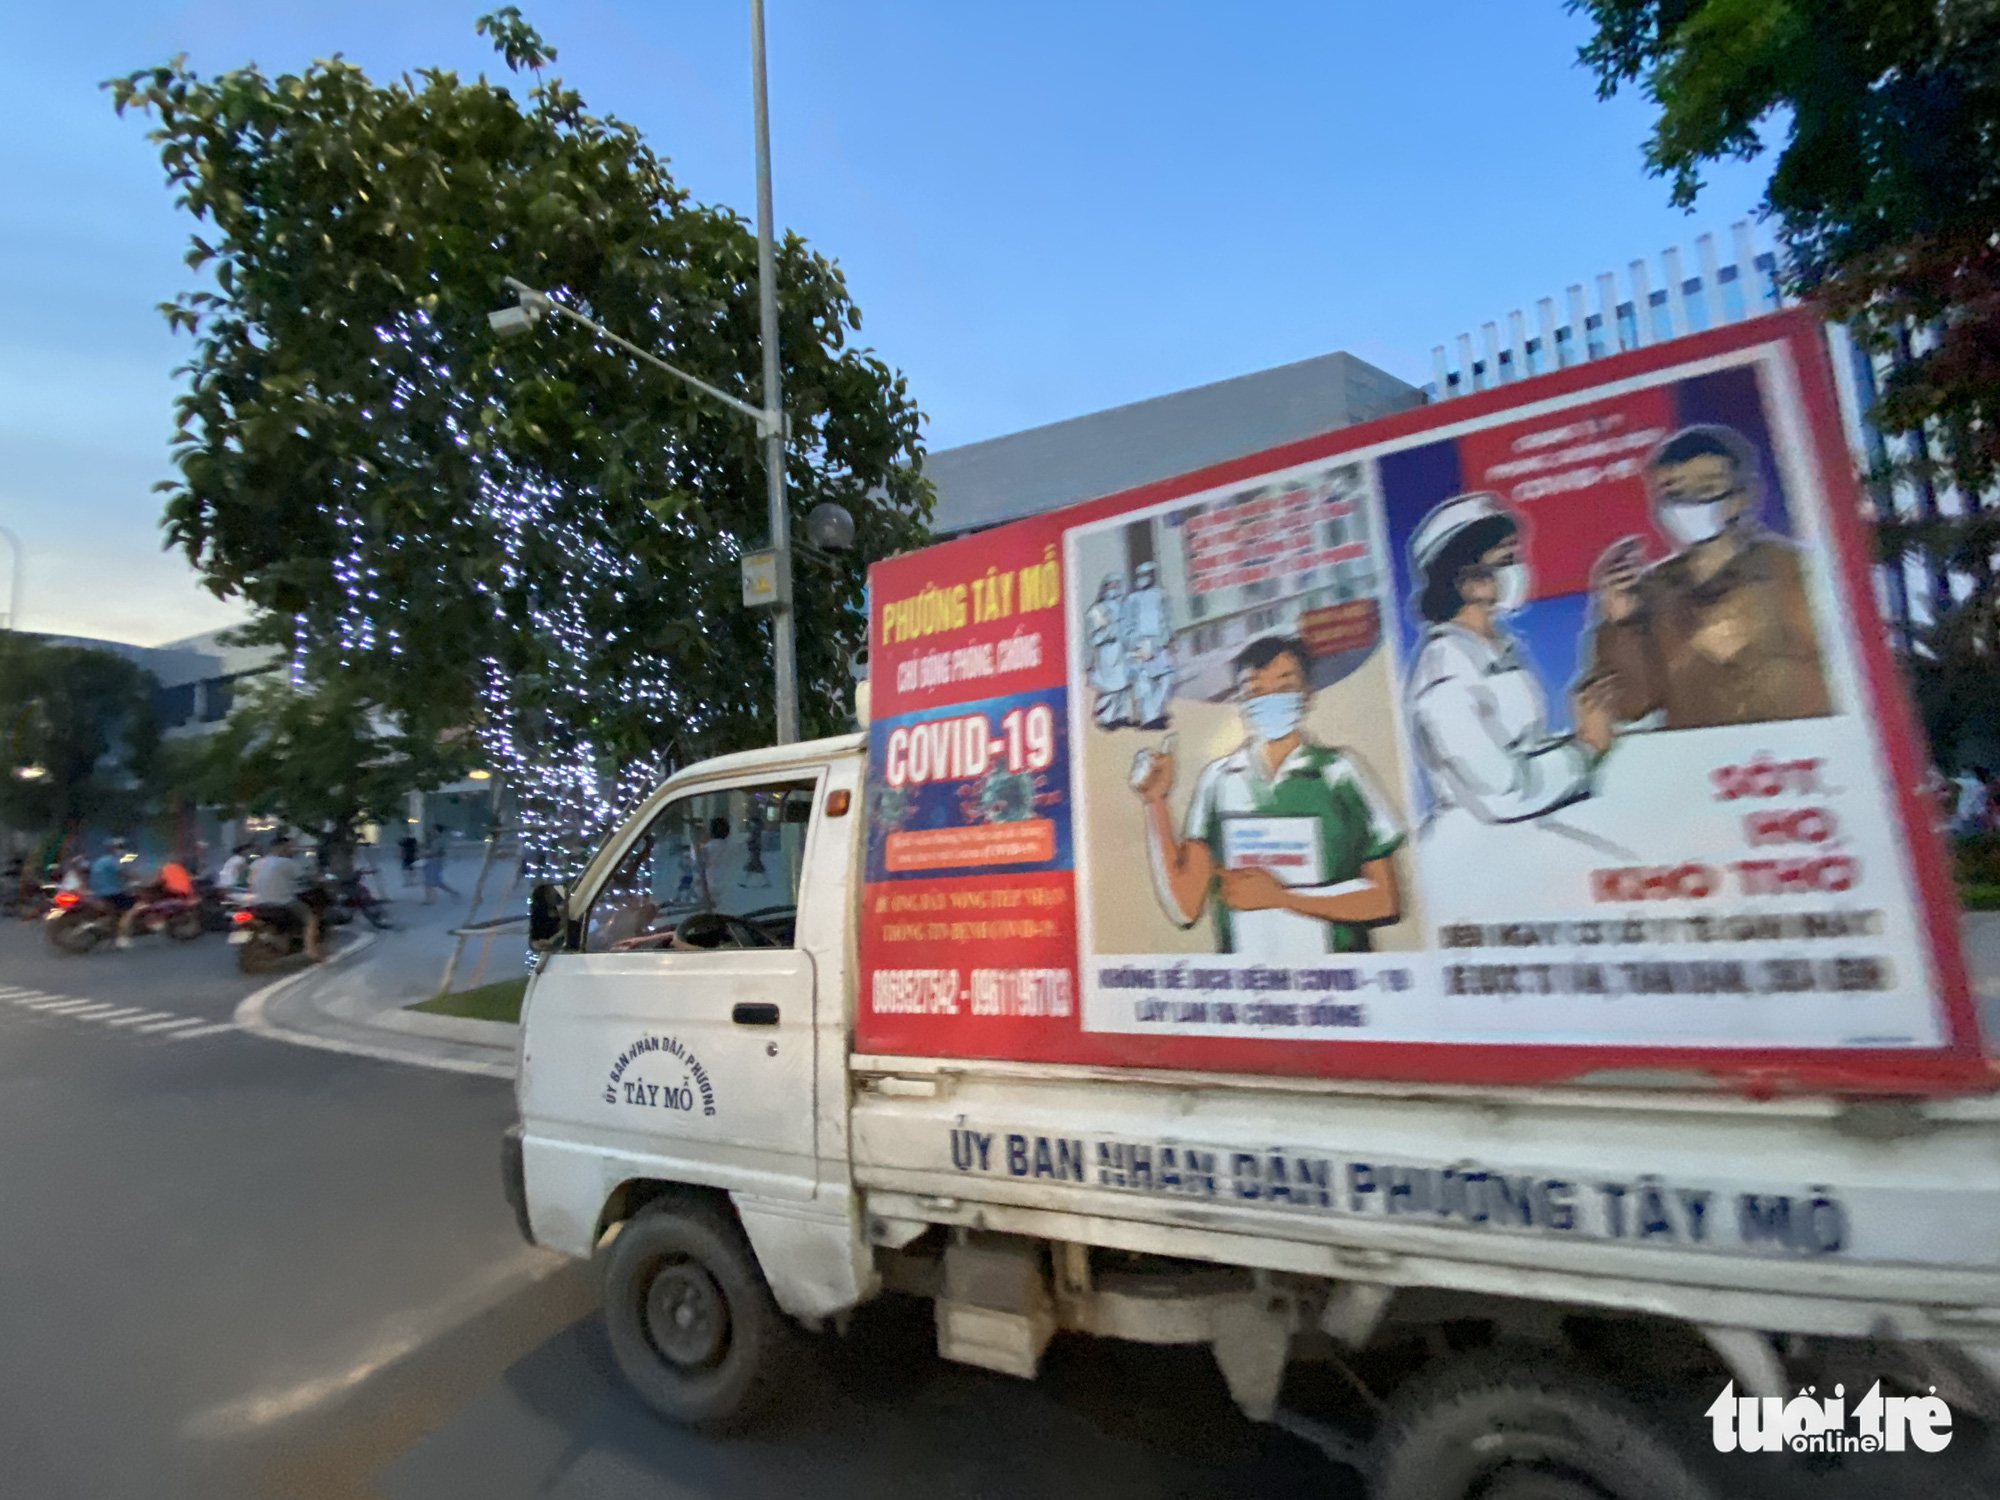 A minitruck of the People's Committee of Tay Mo Ward is seen on a street in Nam Tu Liem District, Hanoi, to broadcast messages of the prevailing gathering ban, May 30, 2021. Photo: Q.T. / Tuoi Tre